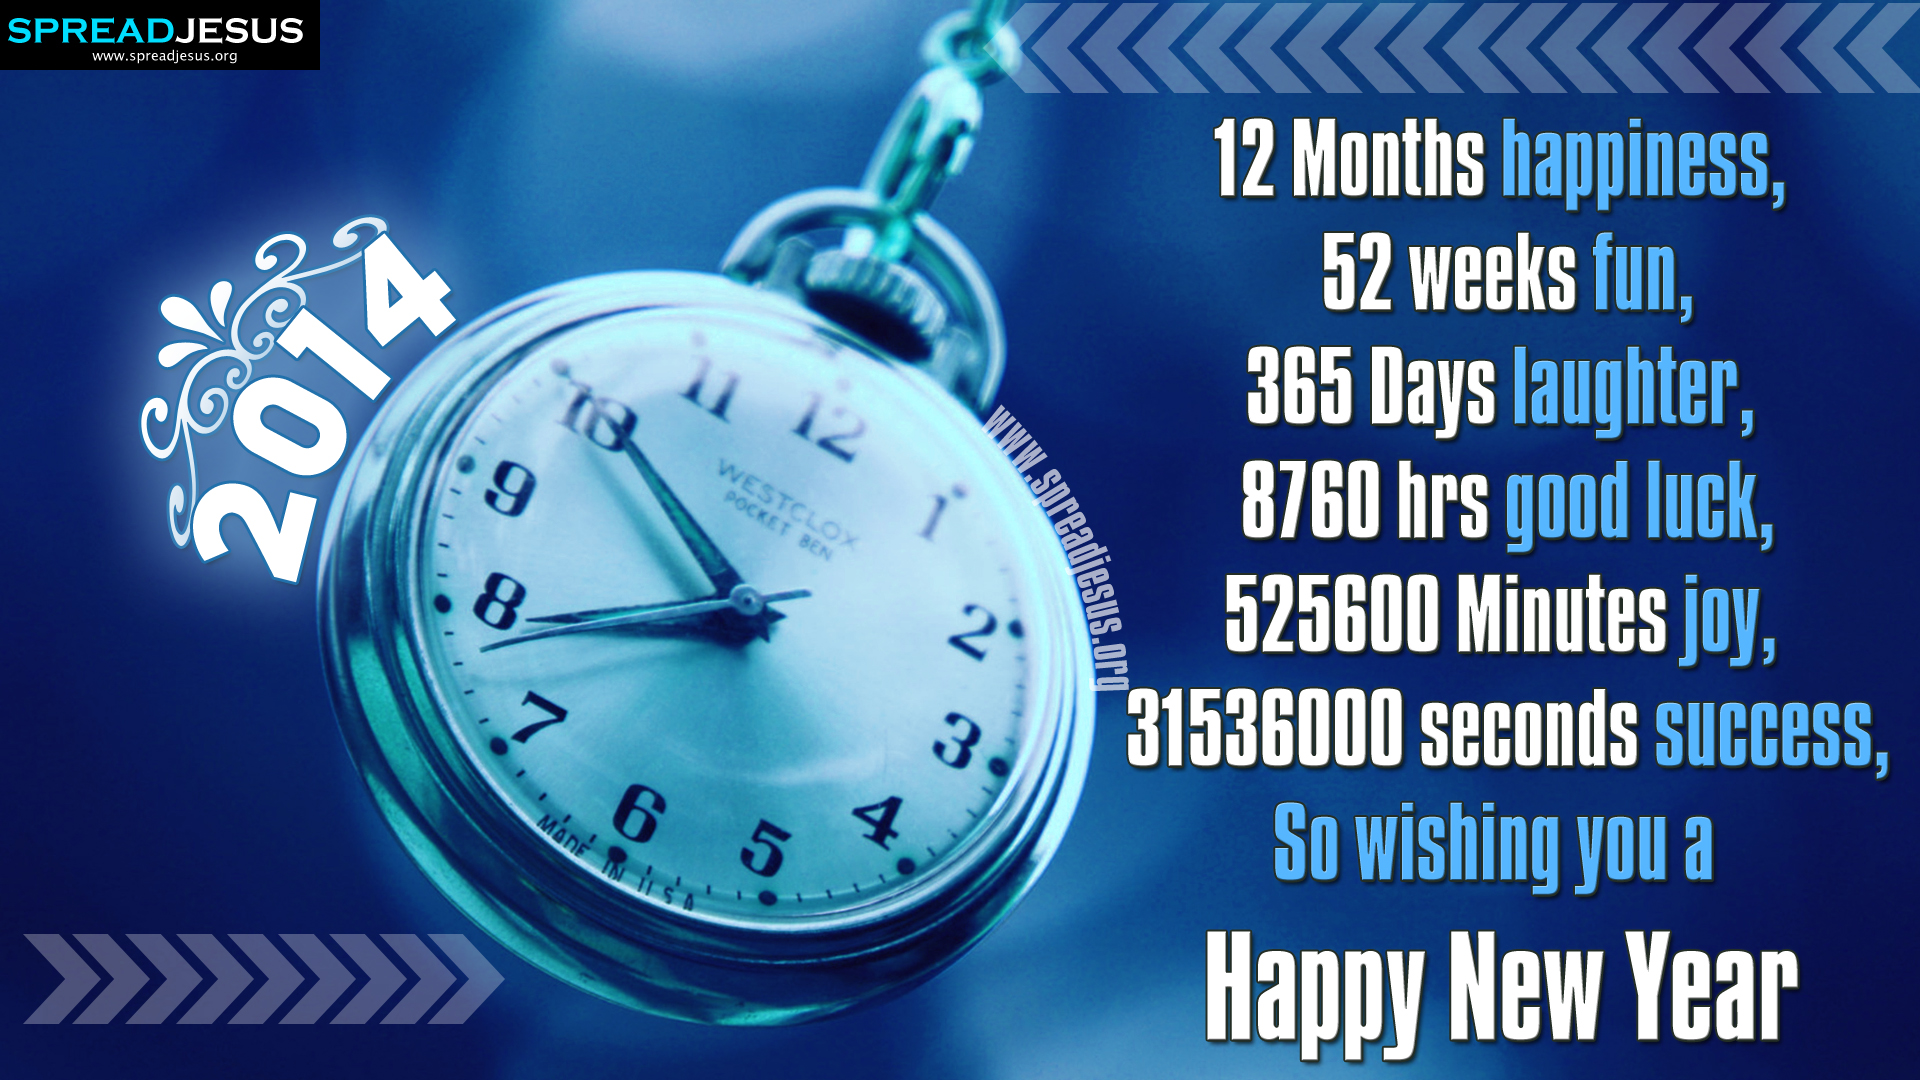 HAPPY NEW YEAR 2014 GREETINGS HD-WALLPAPERS wishing you a happy new year 12 Months happiness, 52 weeks fun, 365 Days laughter, 8760 hrs good luck, 525600 Minutes joy, 31536000 seconds success, So wishing you a Happy New Year 2014